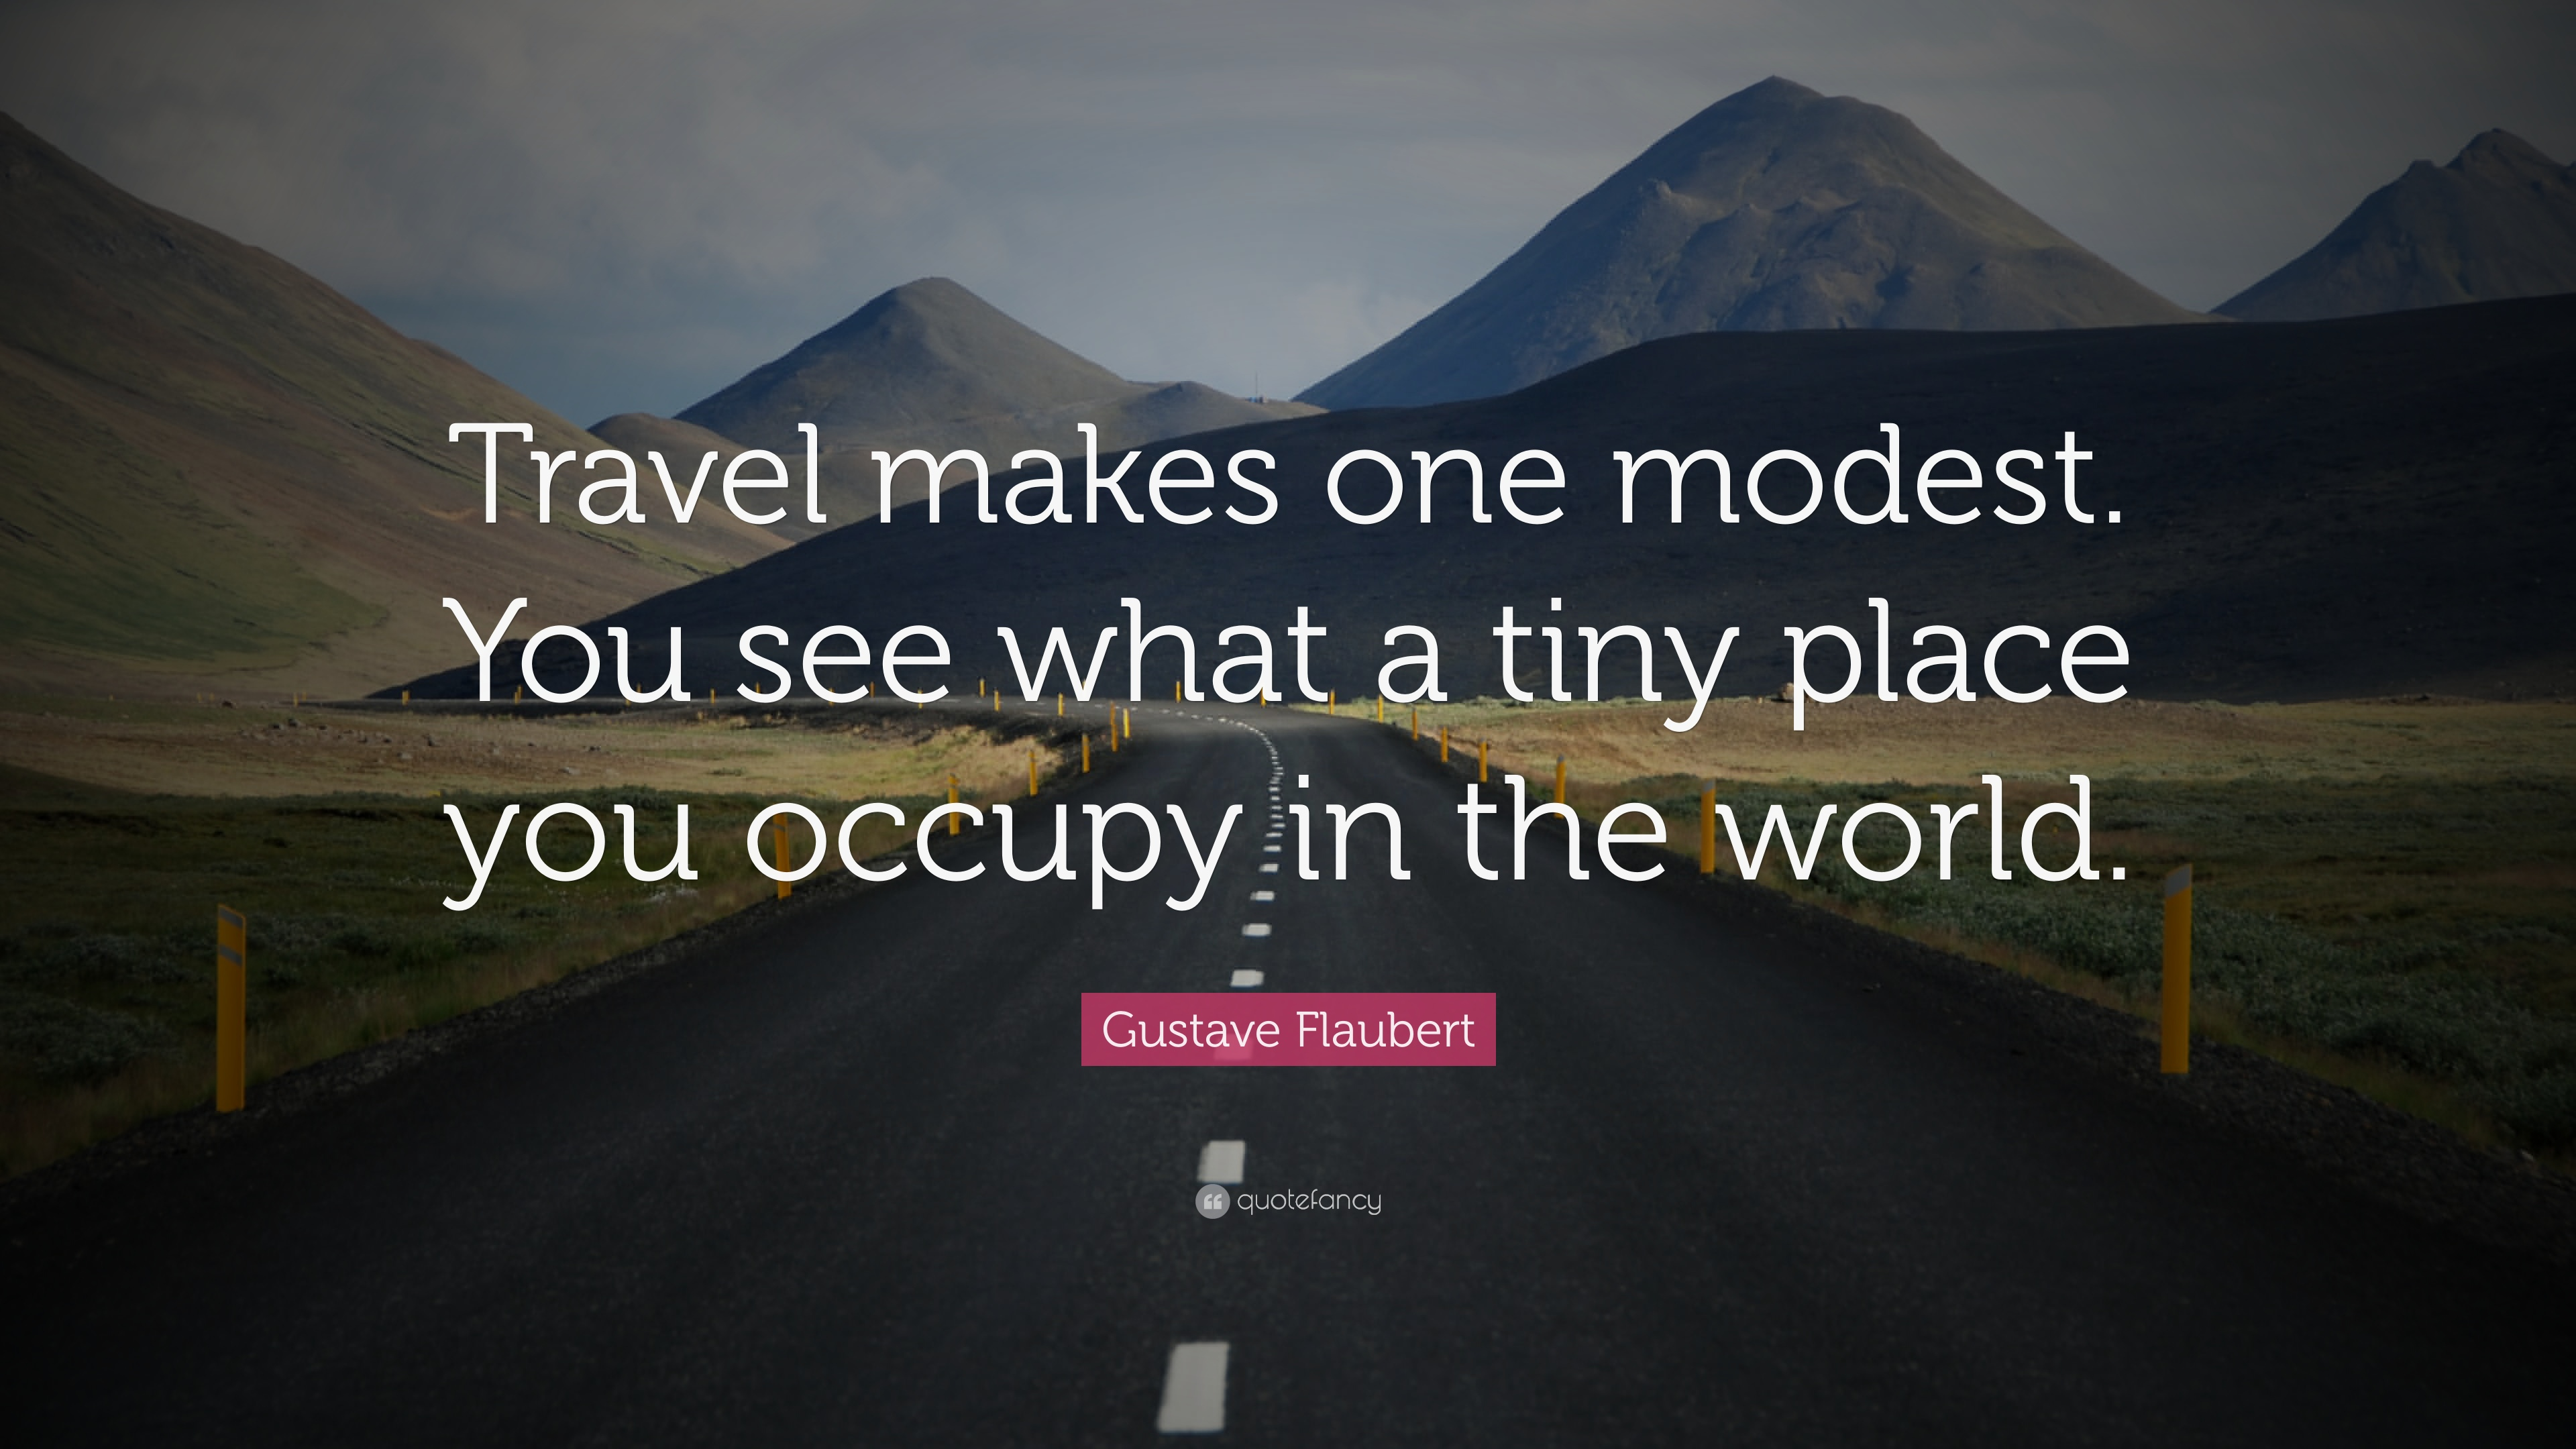 Travel Quotes: U201cTravel Makes One Modest. You See What A Tiny Place You